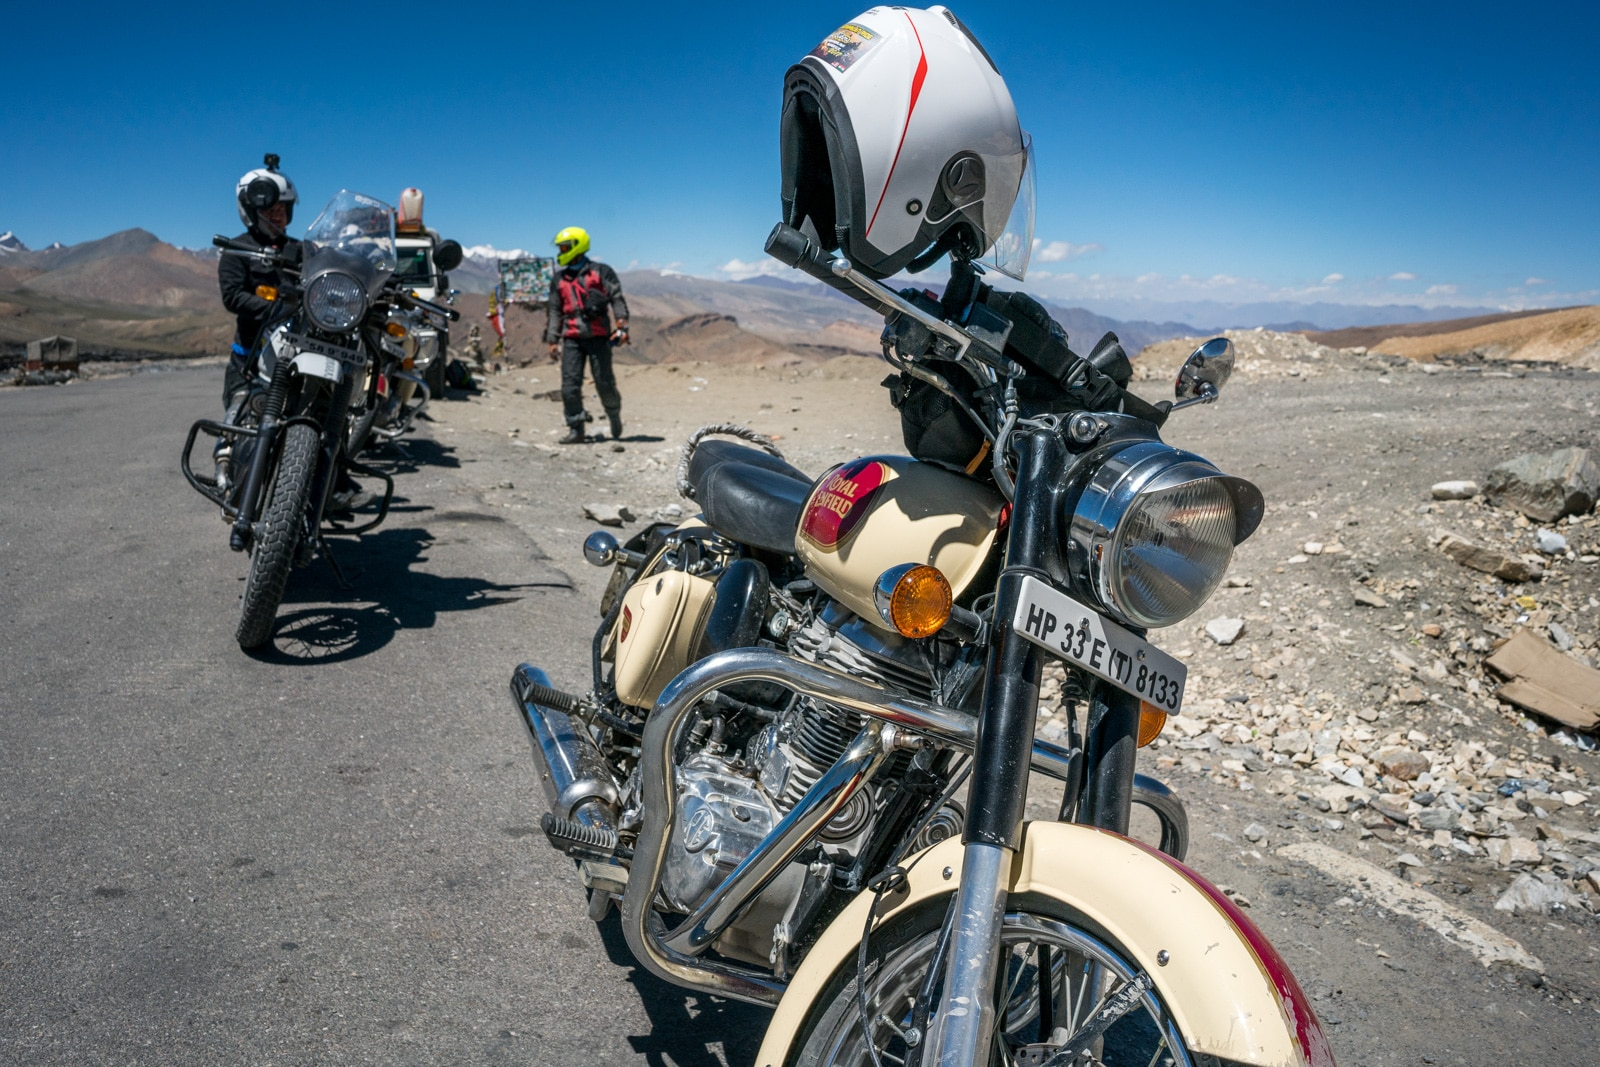 Hitchhiking the Leh - Manali highway in India - Royal Enfield motorbikes - Lost With Purpose travel blog